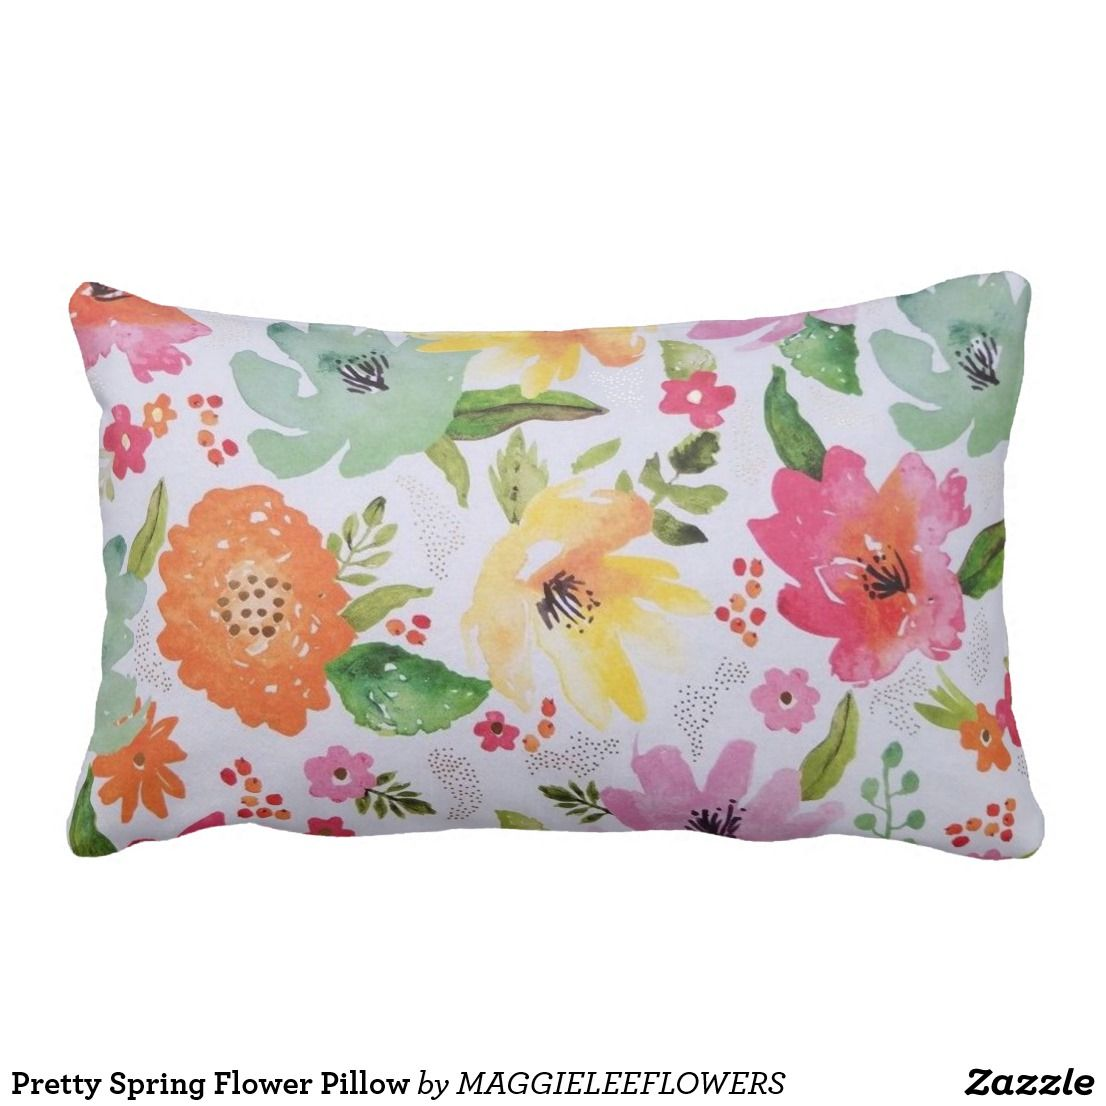 Pretty Spring Flower Pillow Pillows Decorative Throw Pillows